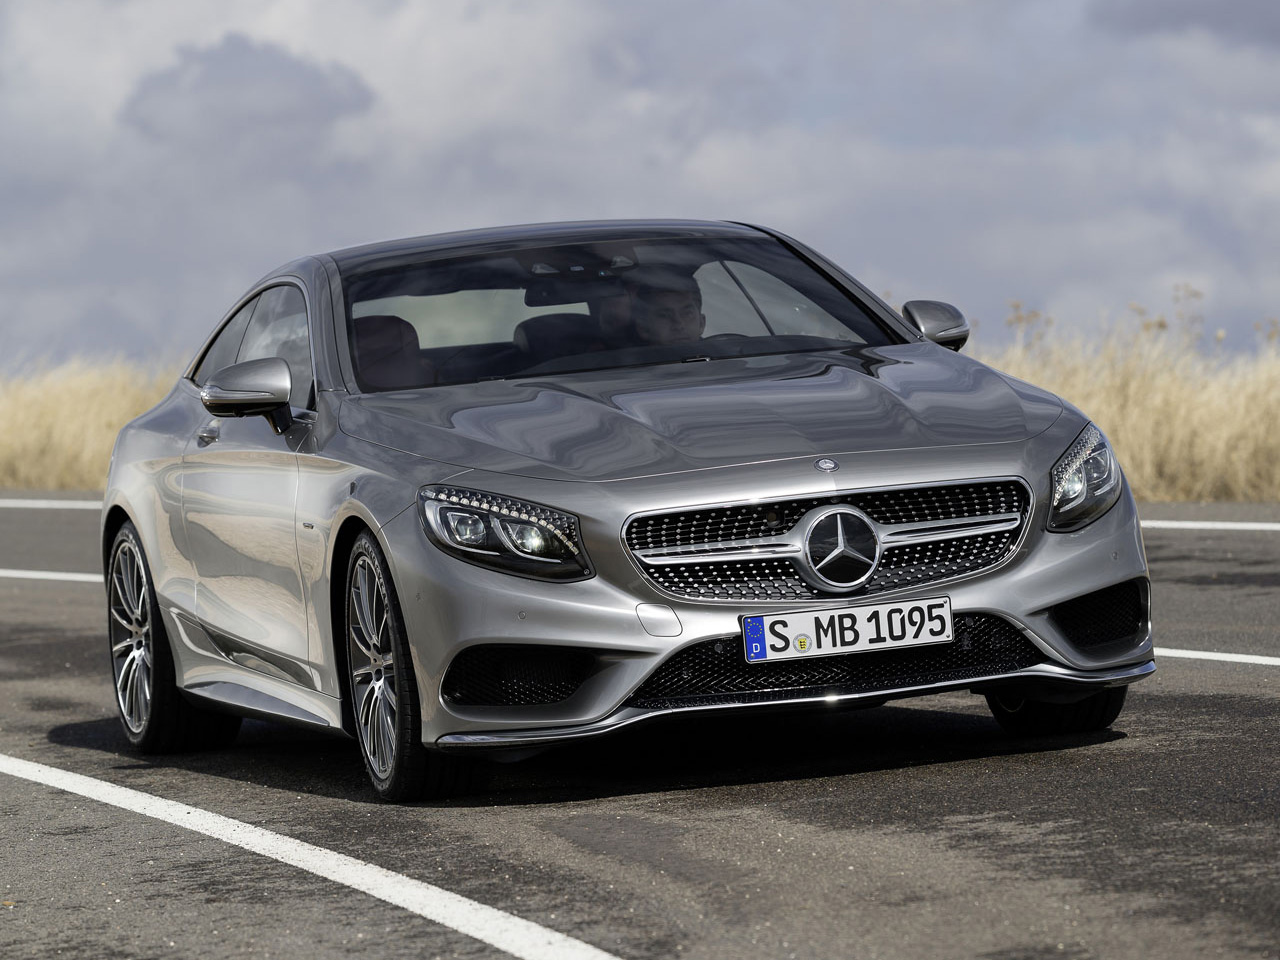 New 2015 Mercedes-Benz S-Class Coupe revealed | CarCostCanada